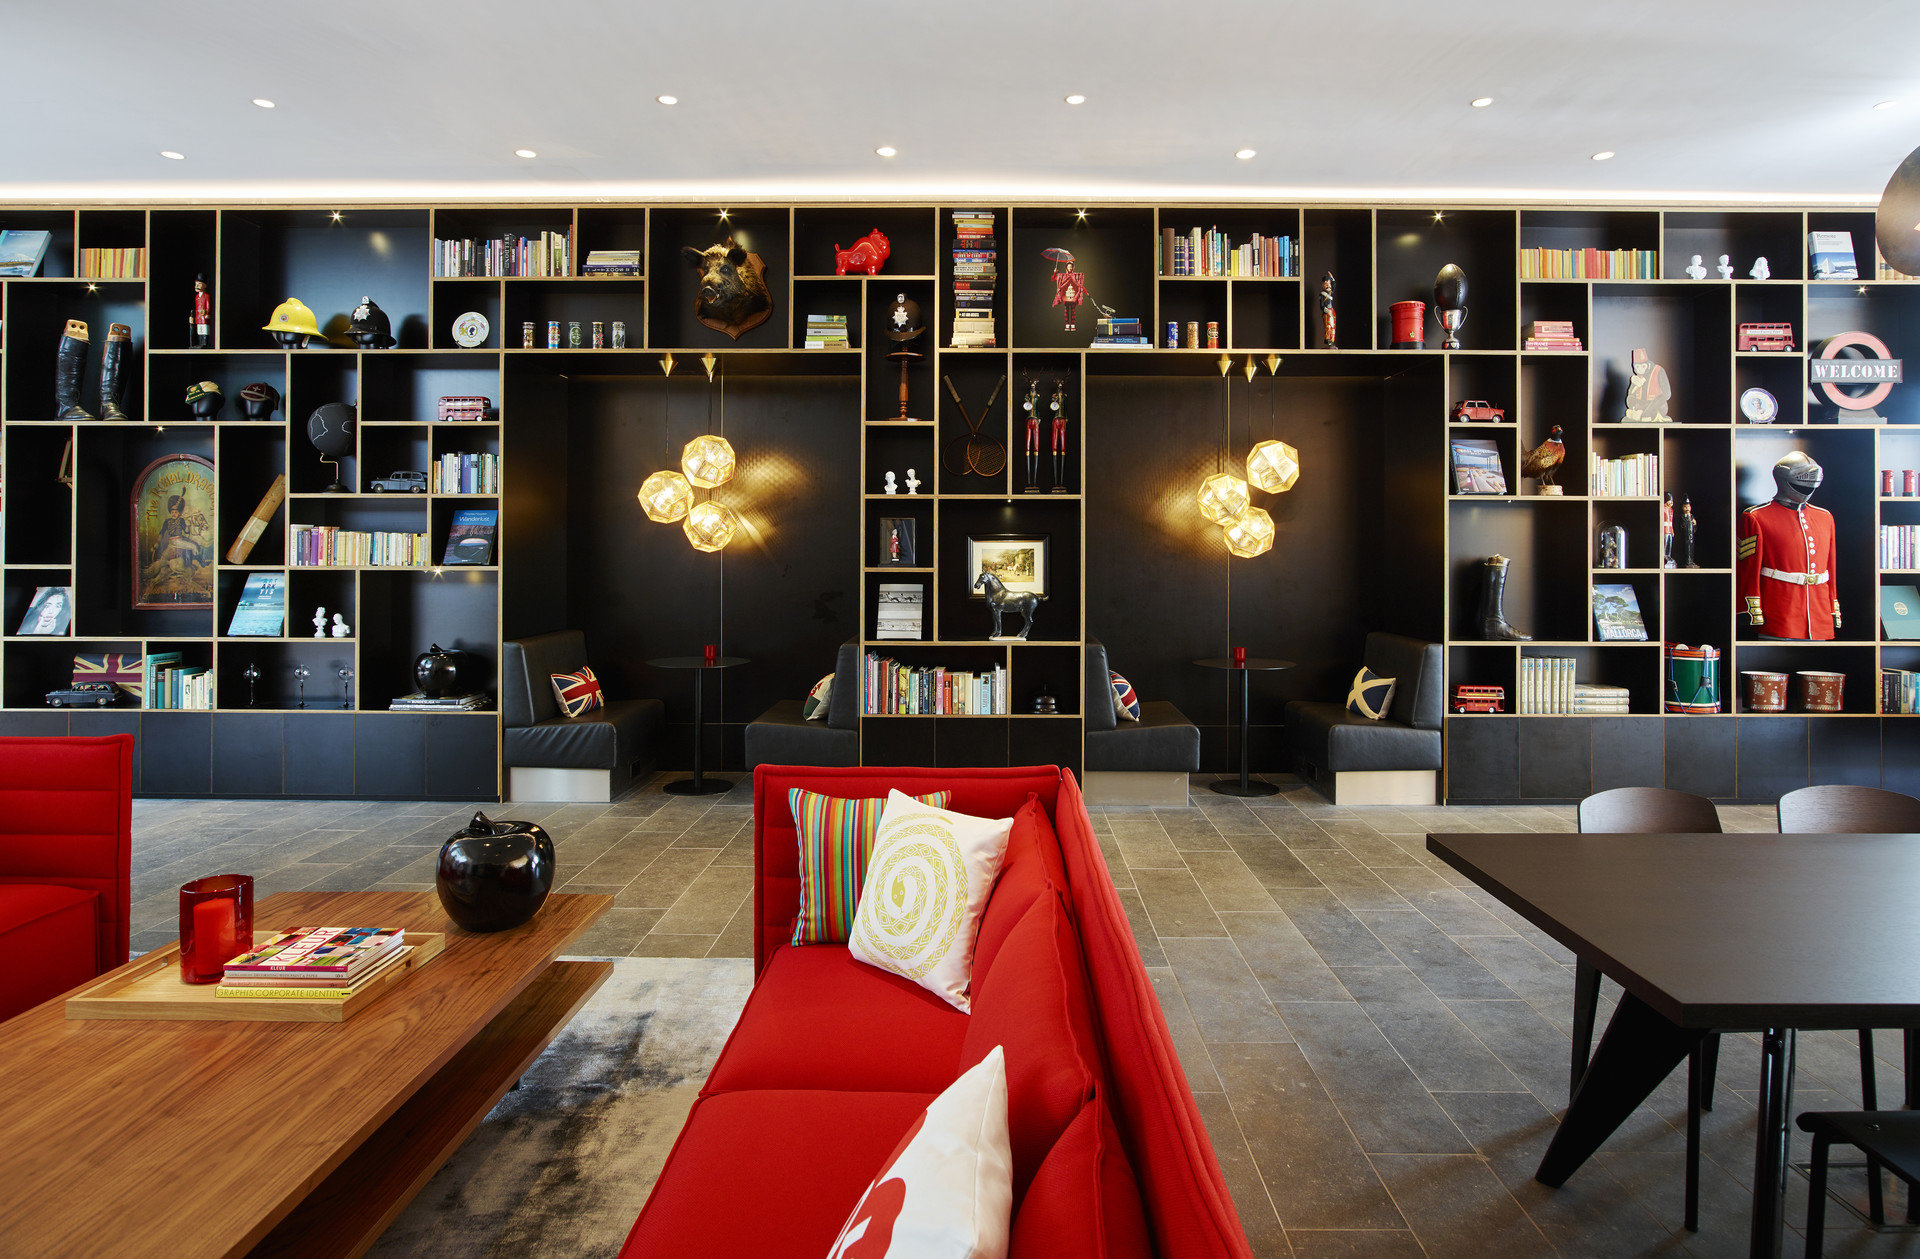 ambient lighting art artistic artsy books Boutique charming cozy decor Hip homey Hotels interior library living area living room Lounge lounge chairs Luxury quirky Style + Design stylish trendy indoor floor room ceiling interior design Design furniture Modern